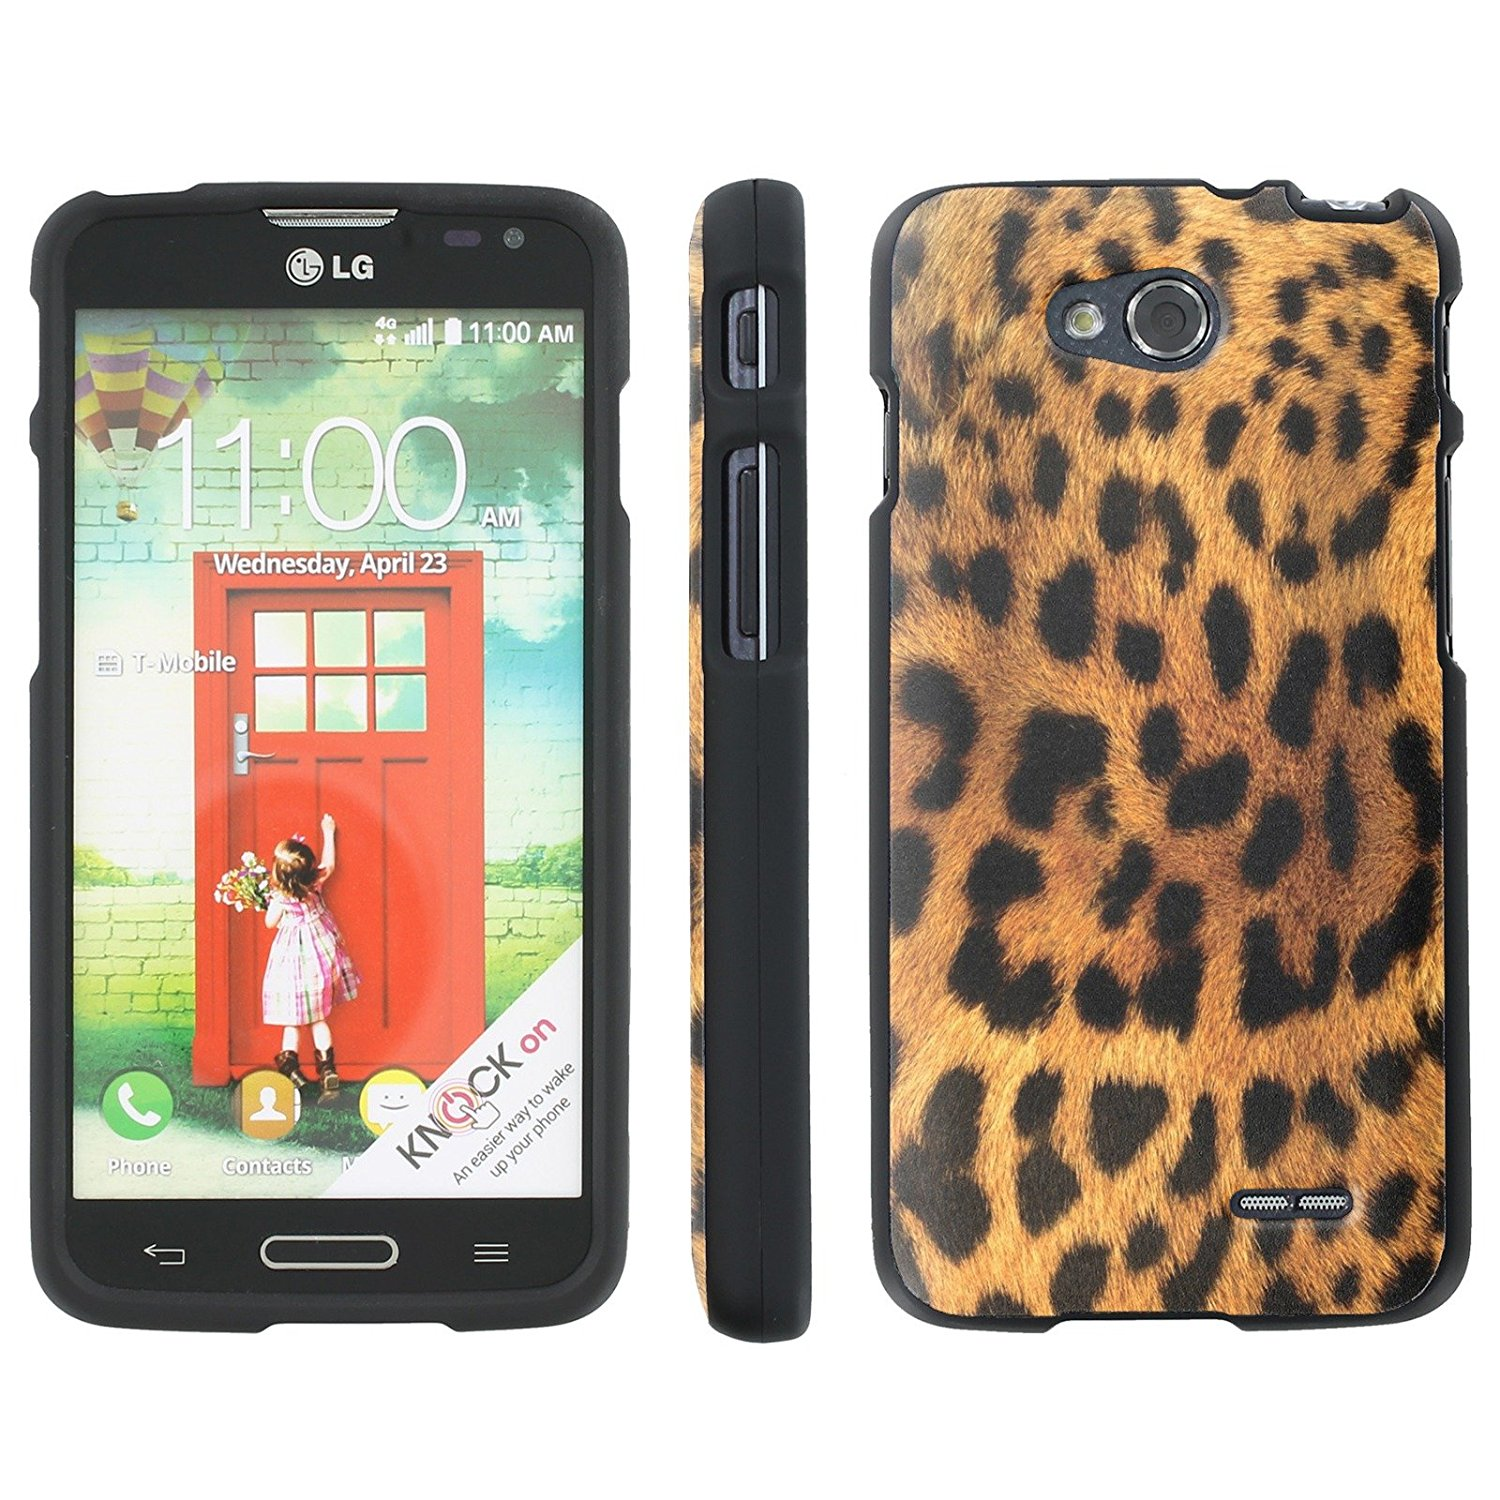 Mobiflare Slim Guard Armor Design Case for [LG Optimus L90 D415] - Cheetah Print